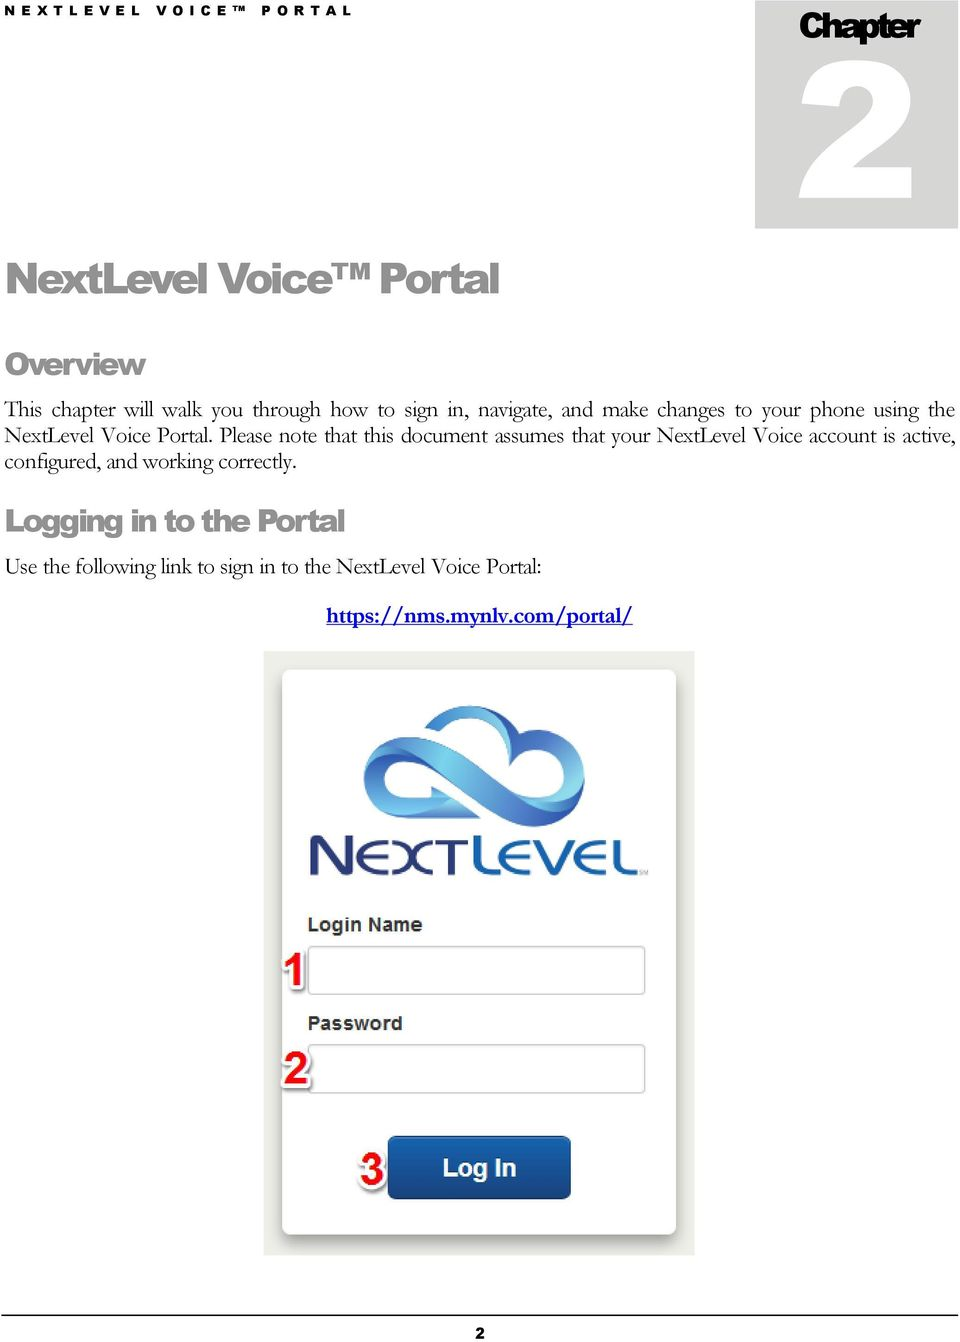 Please note that this document assumes that your NextLevel Voice account is active, configured, and working